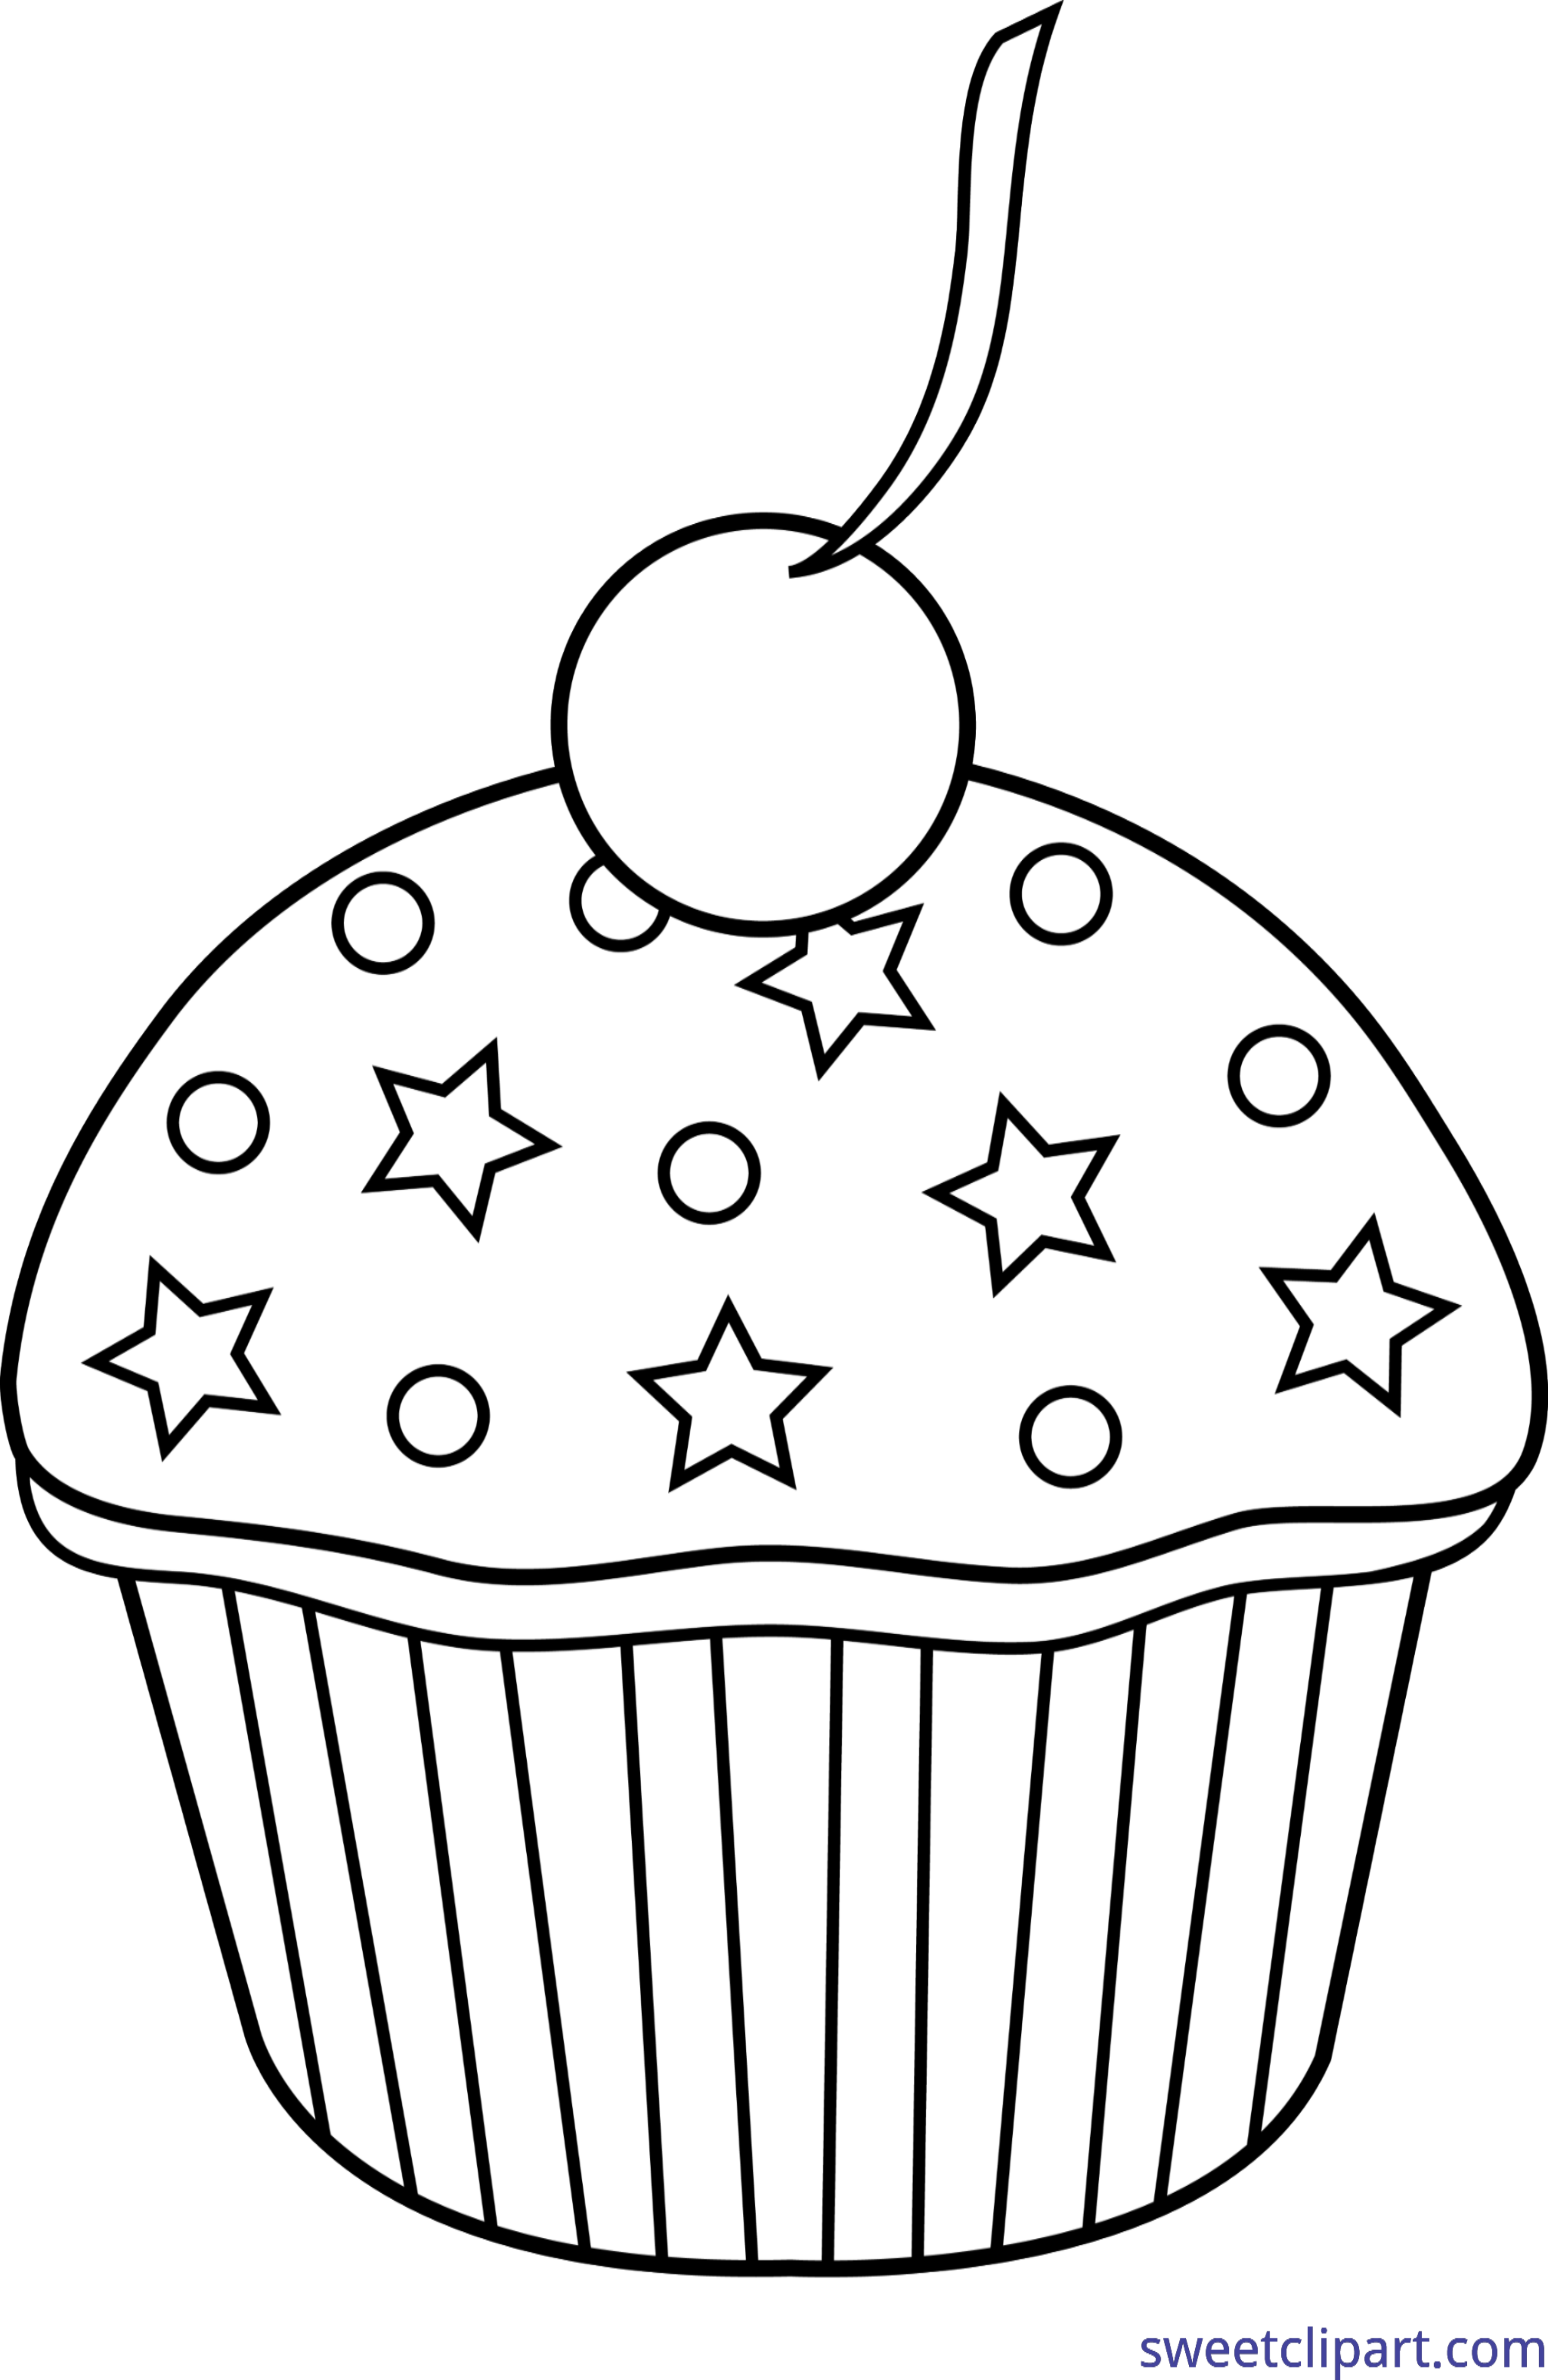 Muffins clipart cupcake tumblr. Sprinkles cherry lineart clip